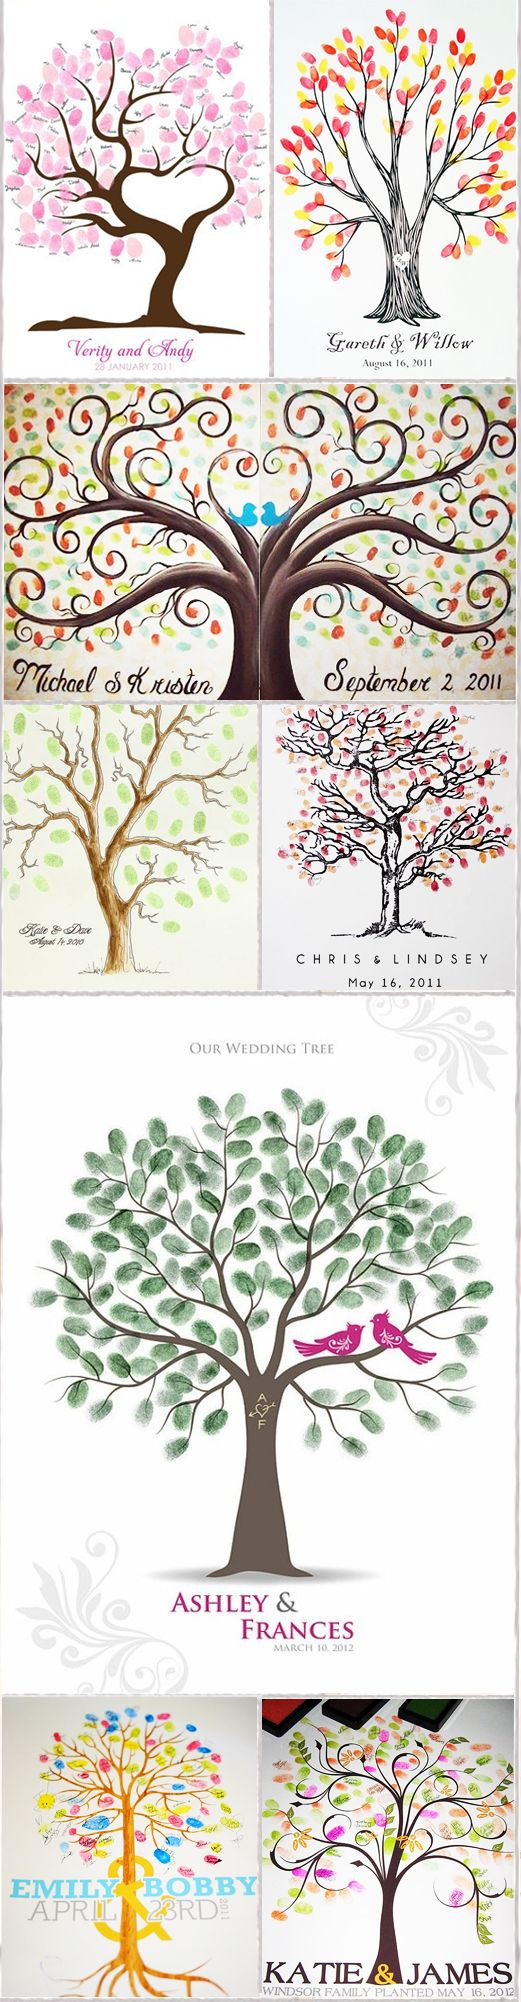 Wedding Tree~The leaves are made of fingerprints from each guest at the wedding! I saw one of these framed & matted after wedding and it was amazing~so original!